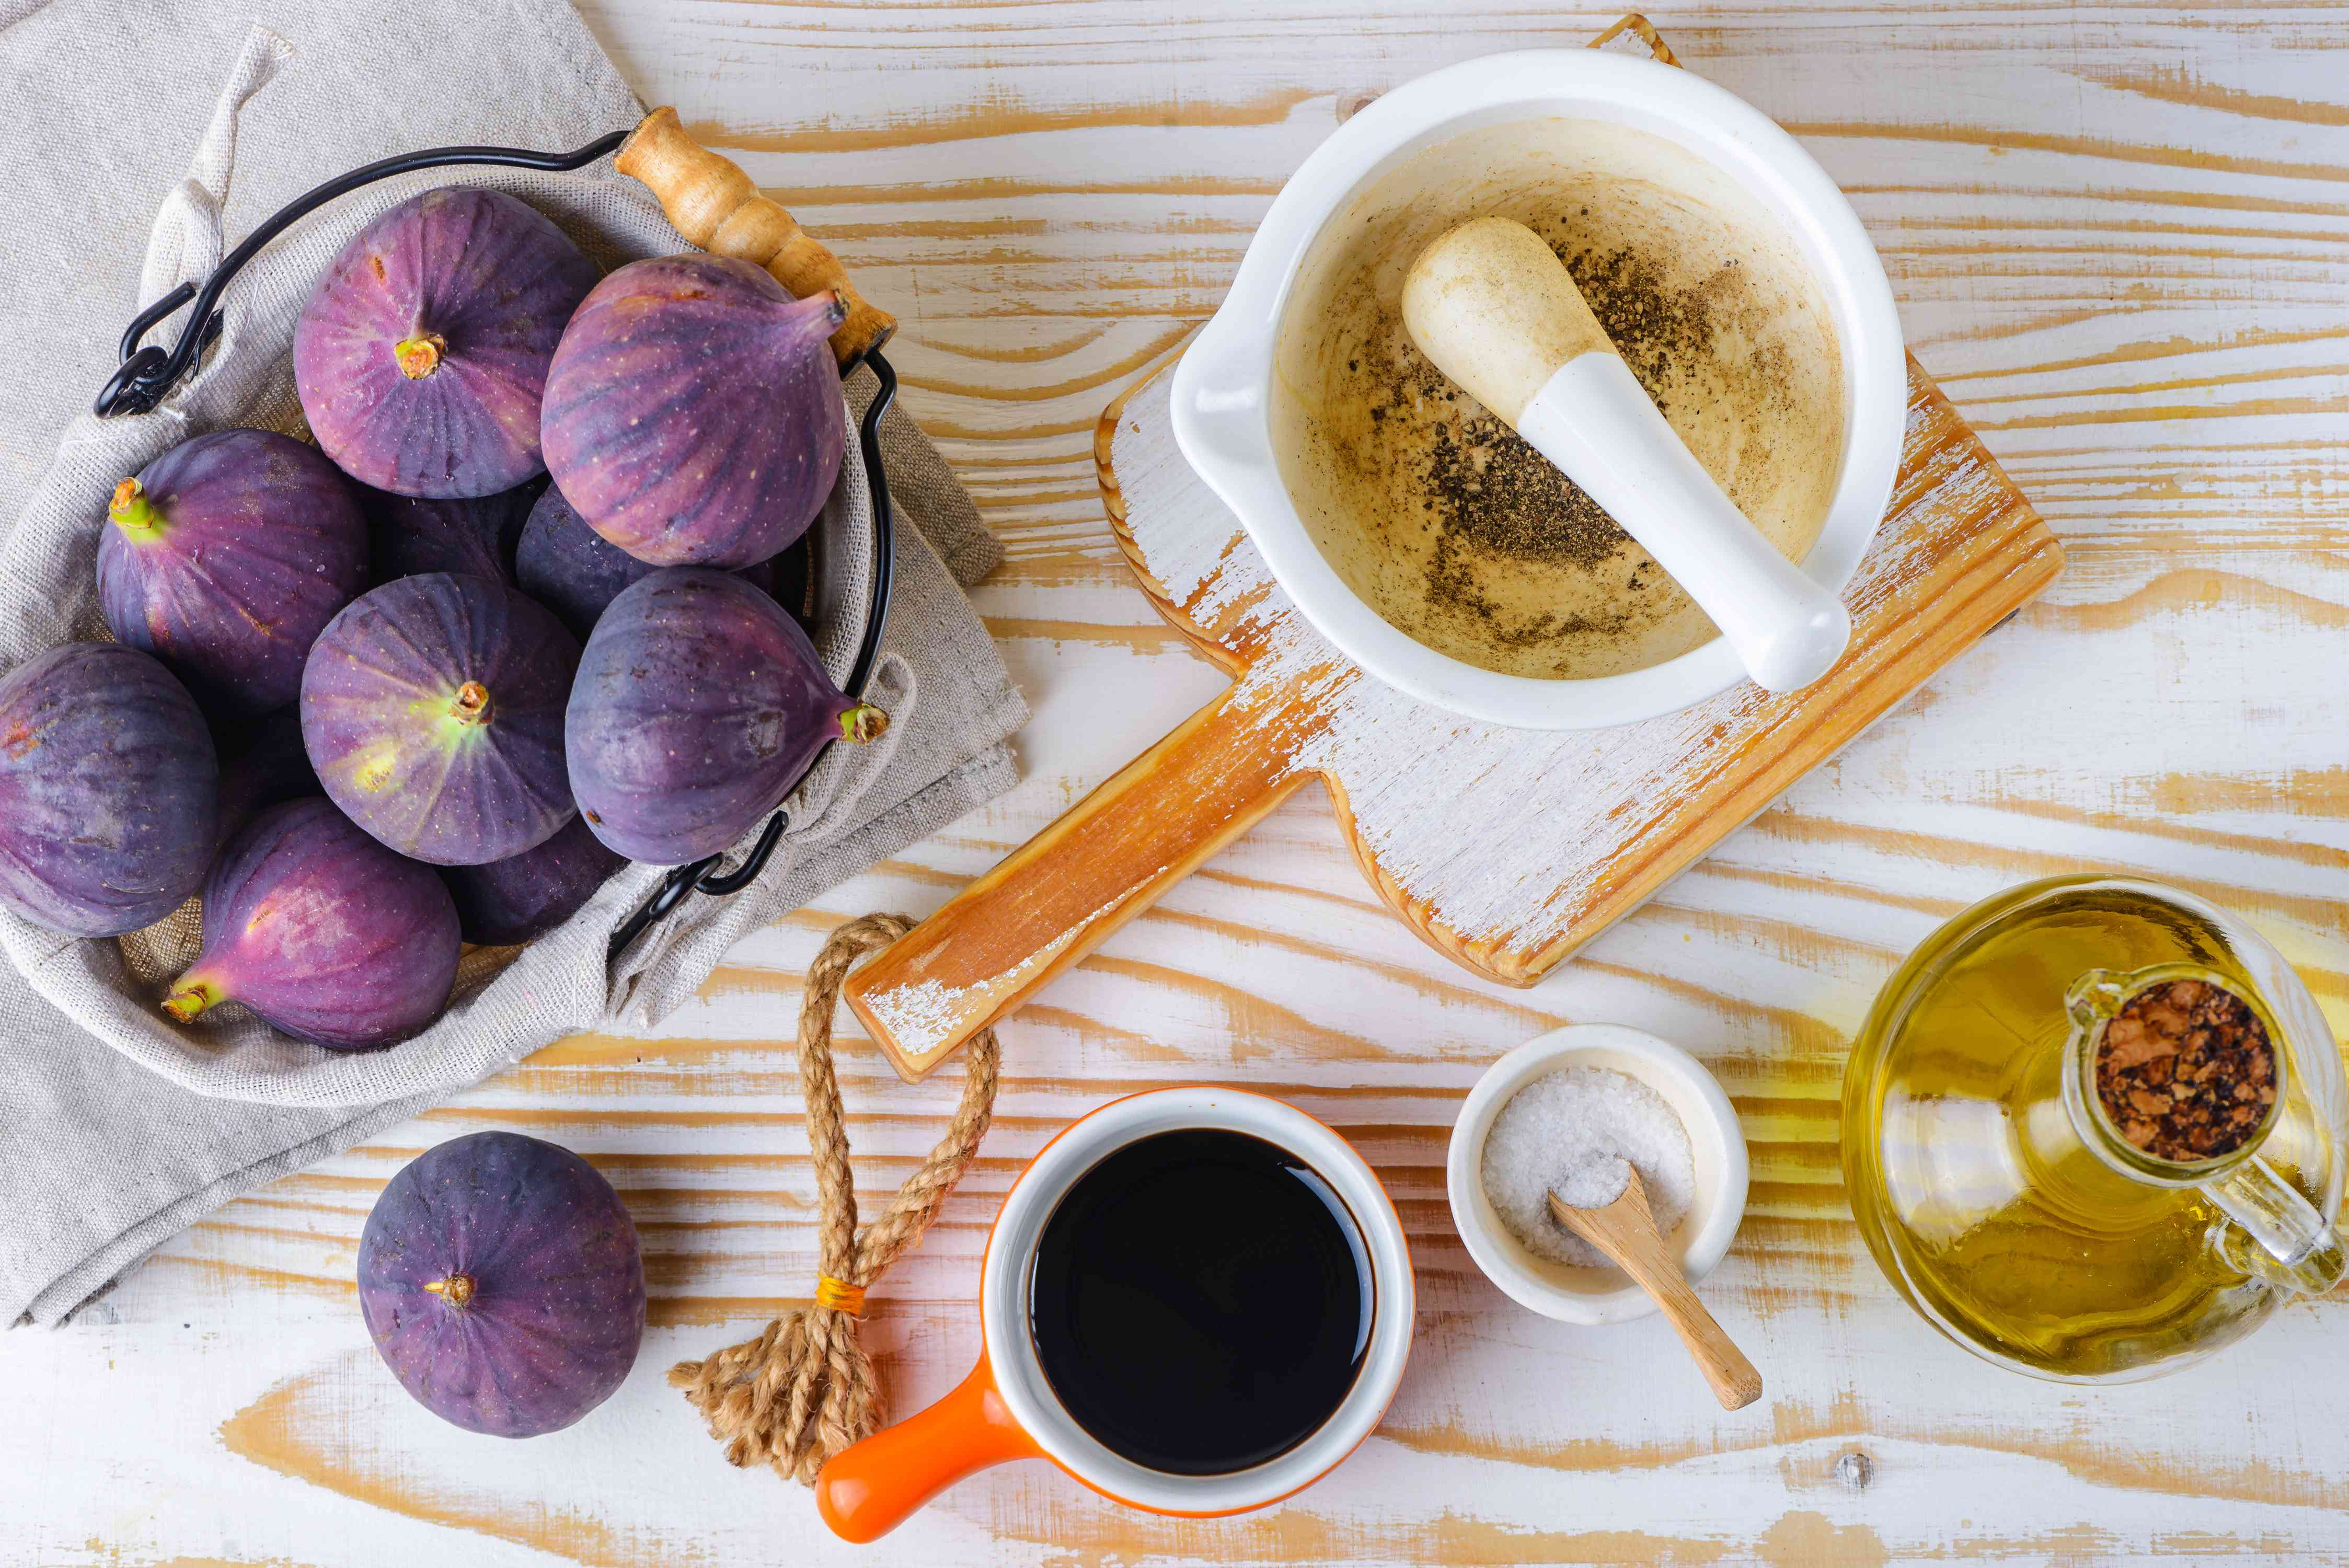 Ingredients for fig coulis